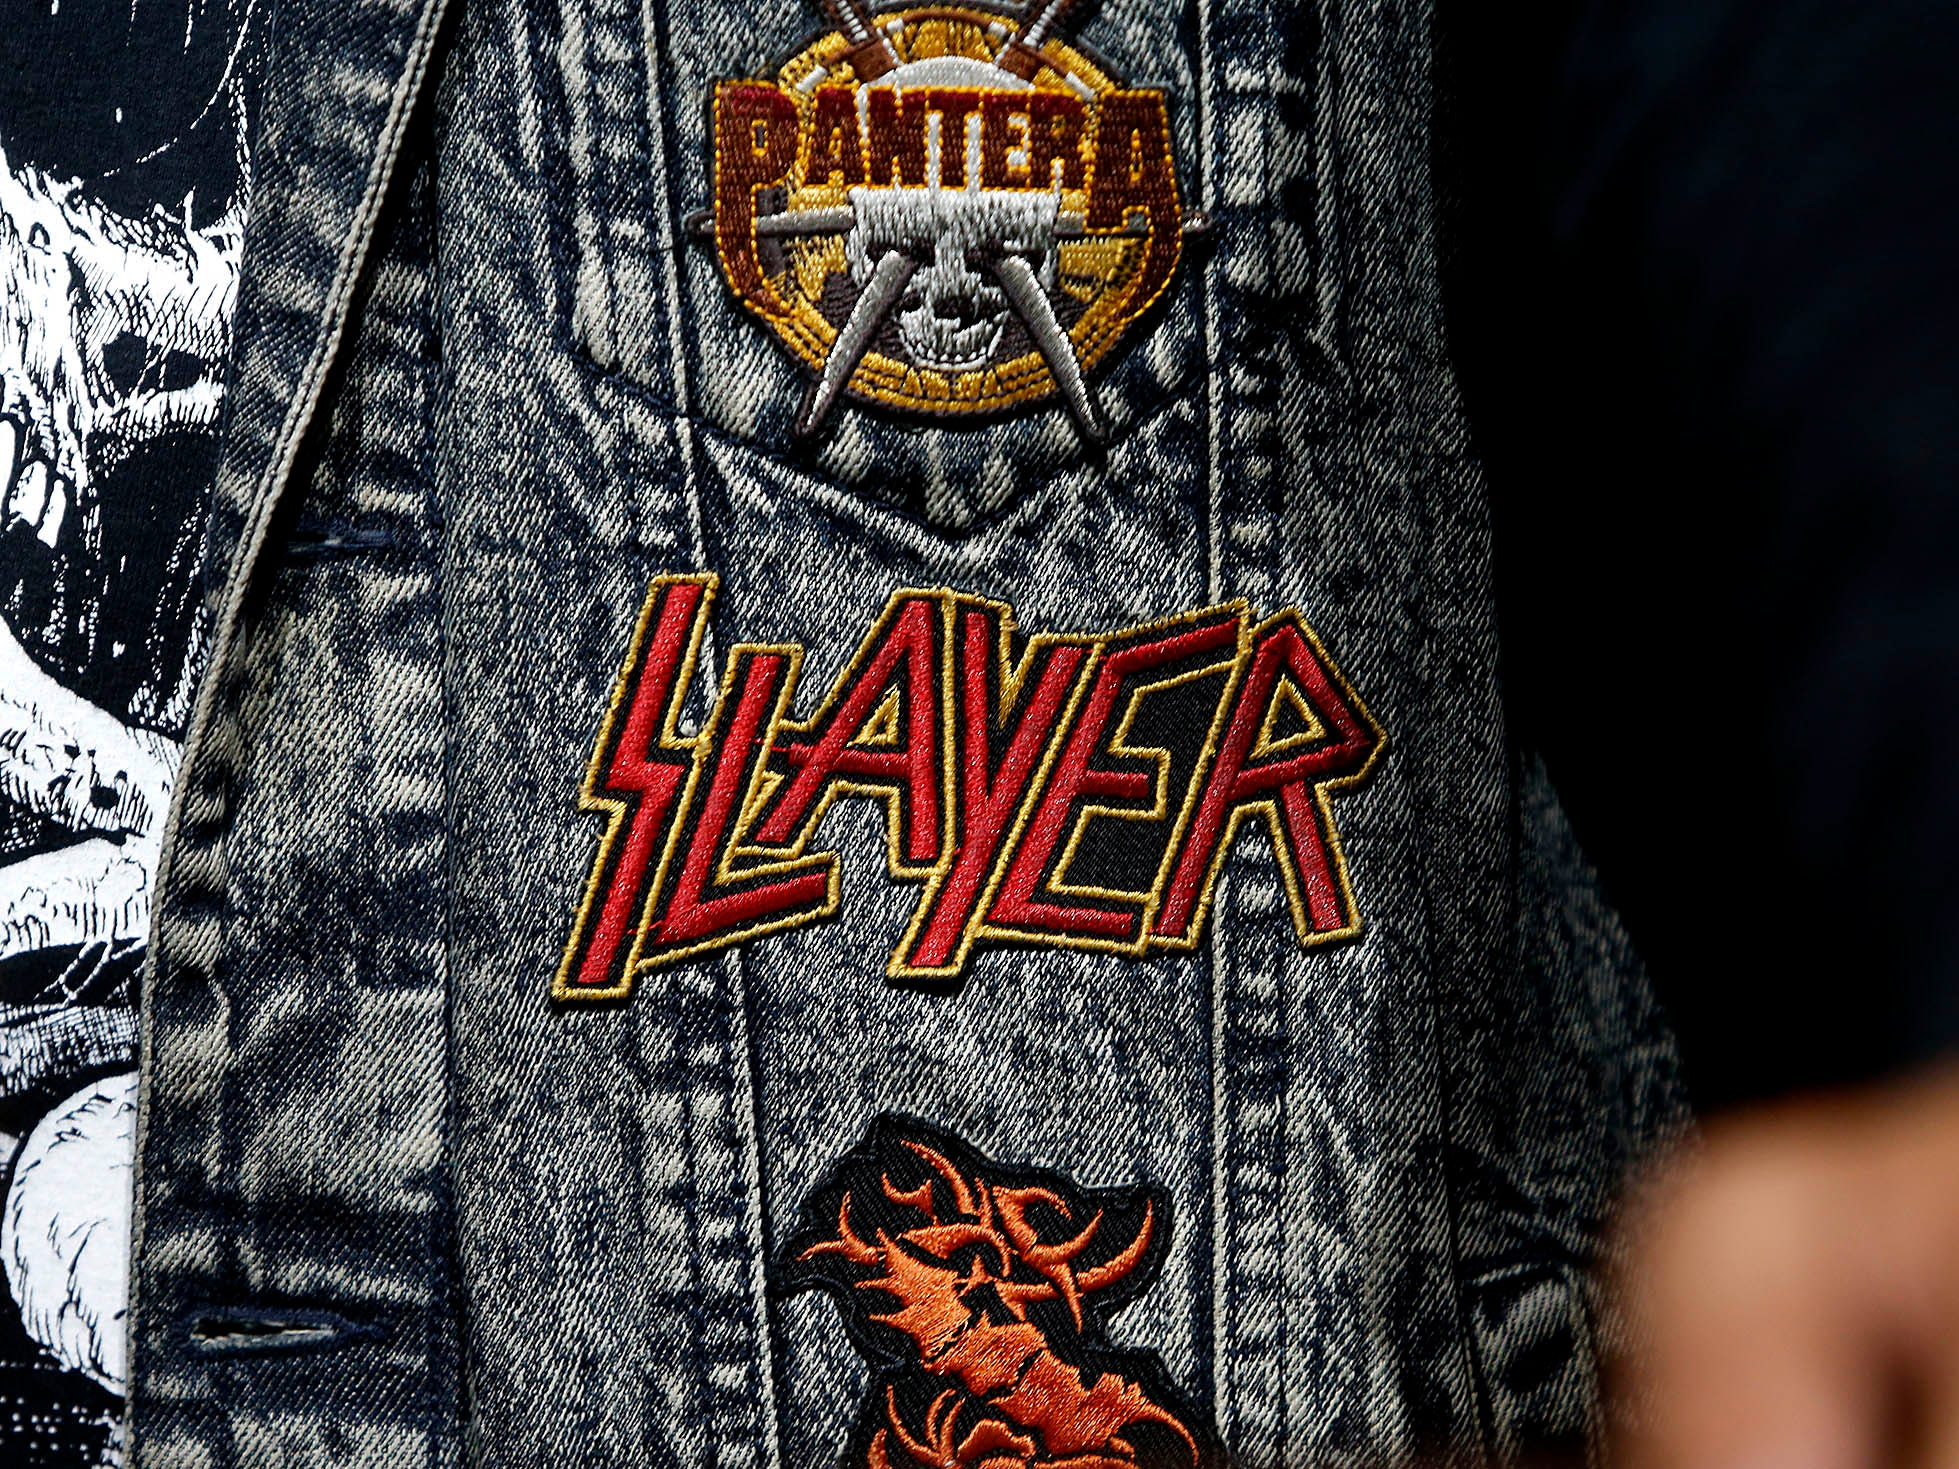 A fan shows their support for Slayer with a patch sewn on their denim jacket during the bands performance at Ak-Chin Pavilion in Phoenix on May 2, 2019.